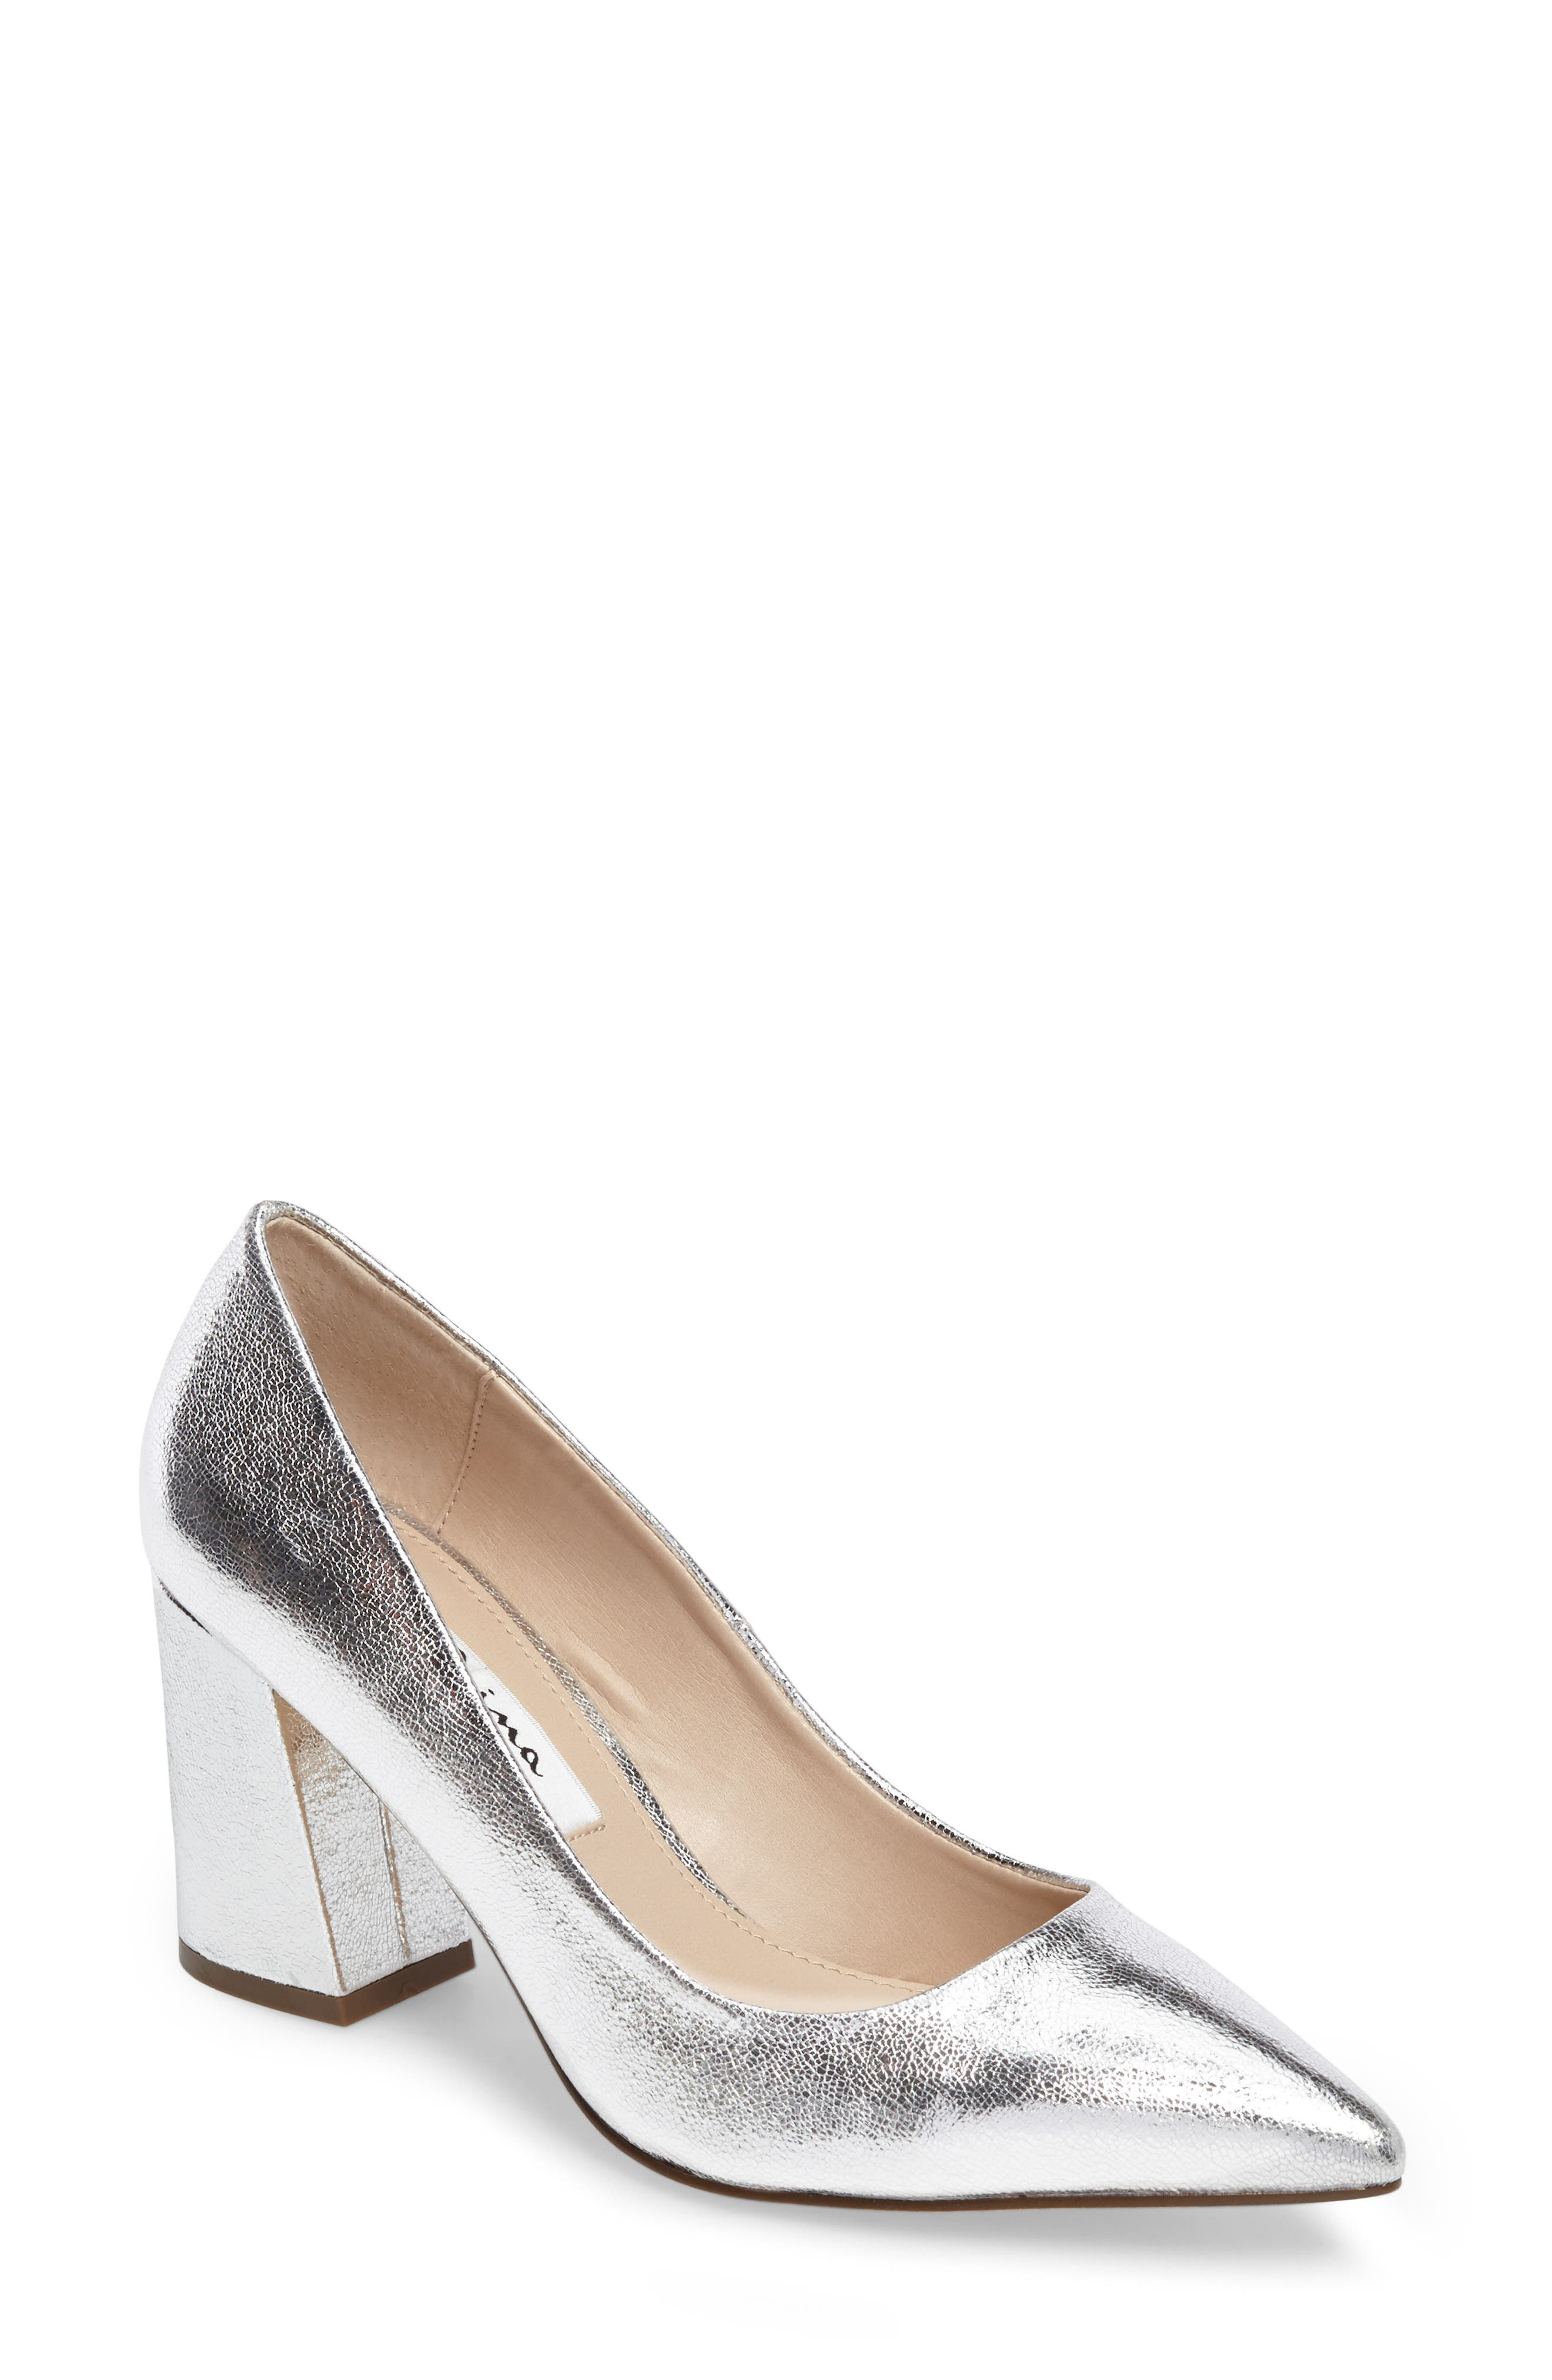 Tinsley Pointy Toe Pump,                         Main,                         color, Silver Fabric